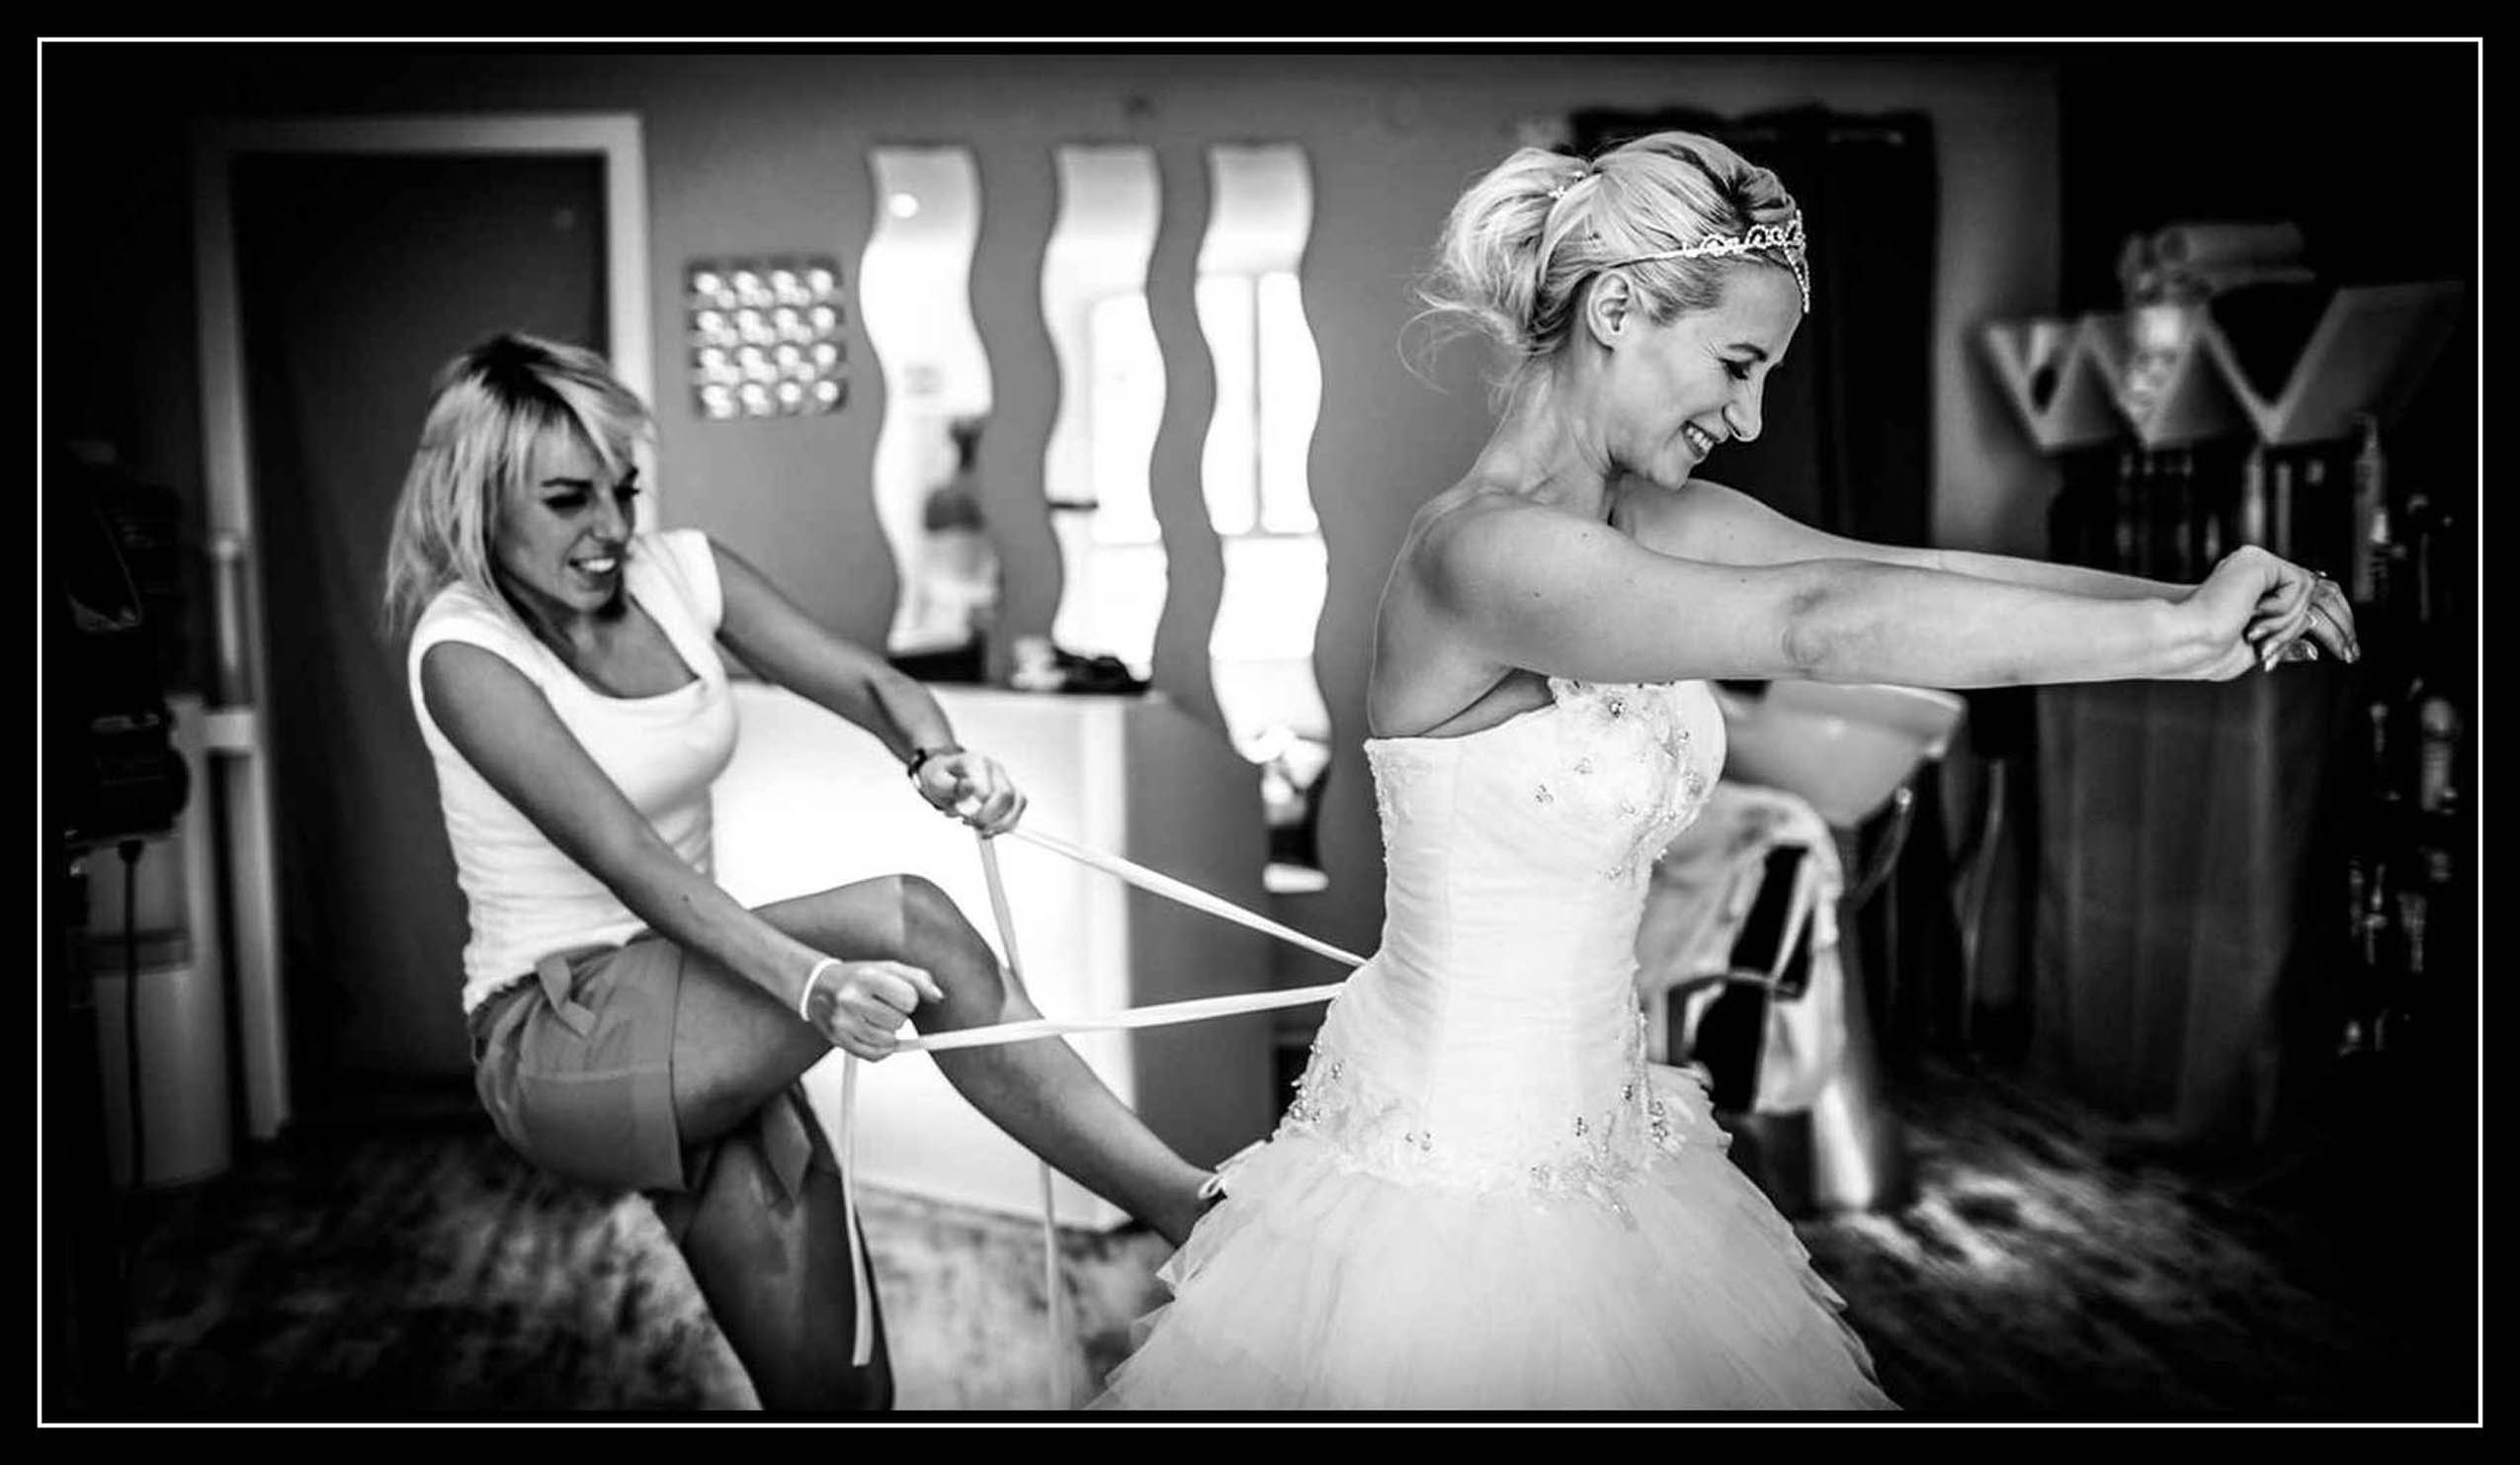 Ficelle mariage